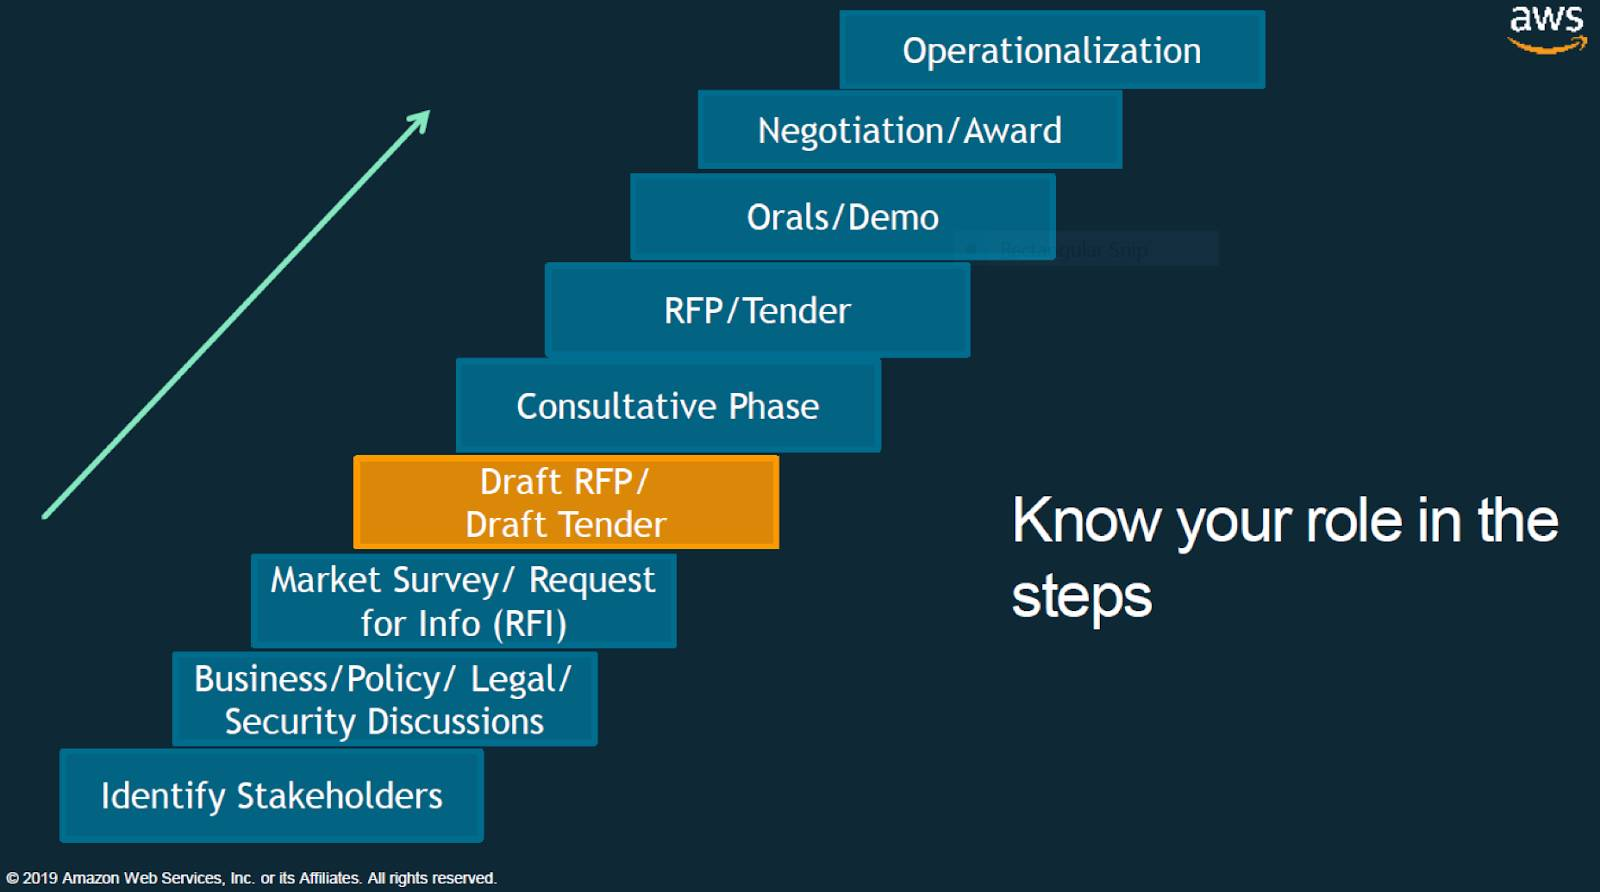 the steps in a cloud adoption process; Identify Stakeholders, Business/Policy/Legal/Security Discussions, Market Survey/Request for Info (RFI), Draft RFP/Draft Tender, Consultative Phase, RFP/Tender, Orals/Demo, Negotiation/Award, and finally Operationalization; Draft RFP/Draft Tender is highlighted and there's a message to Know your role in the steps